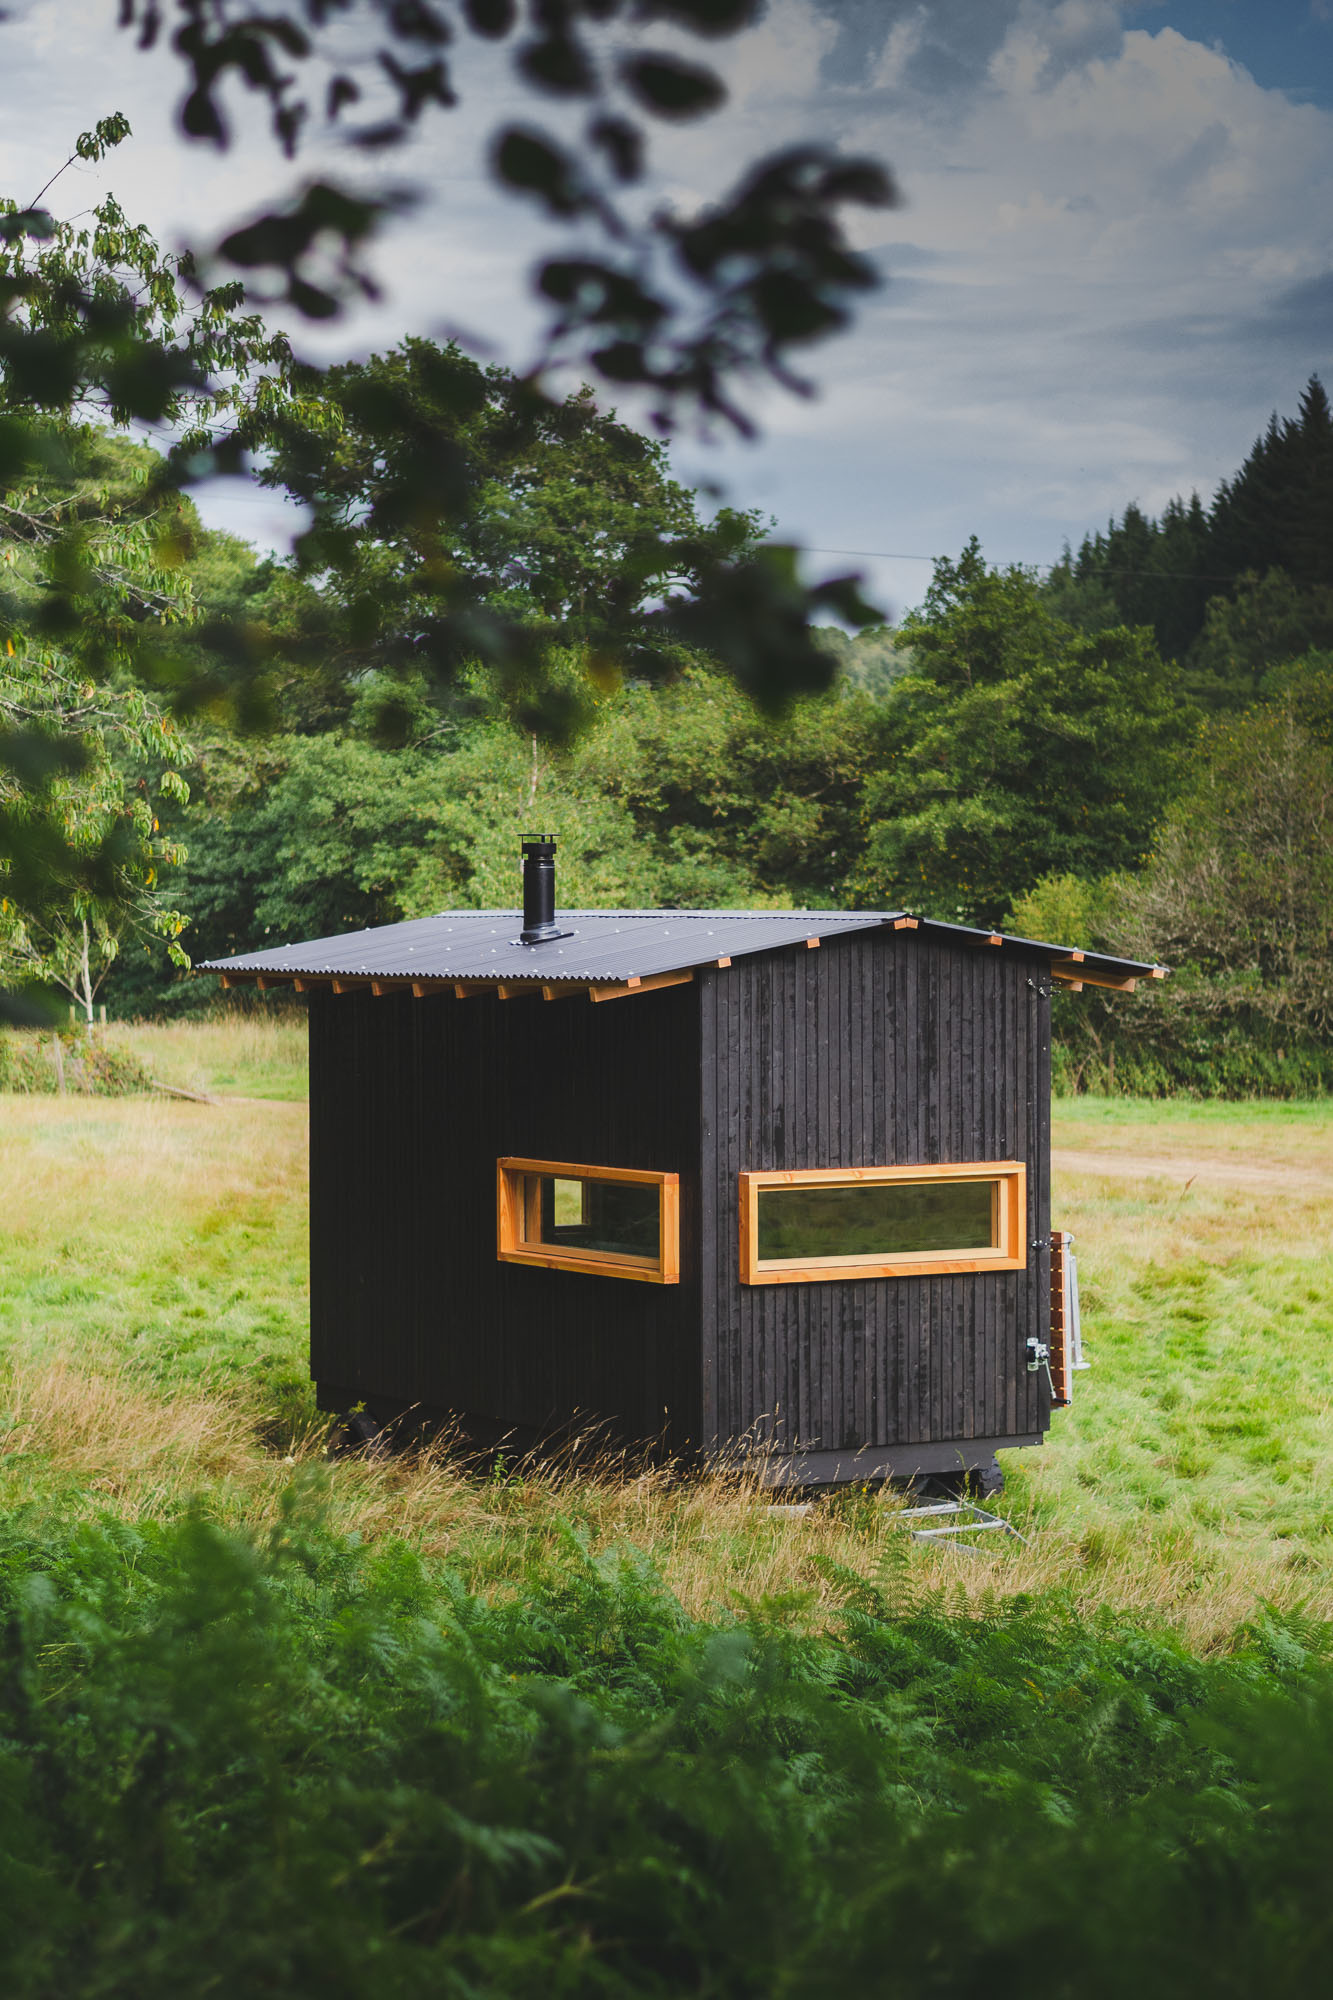 off grid tiny wooden nomad cabin with black cladding in a sunny field